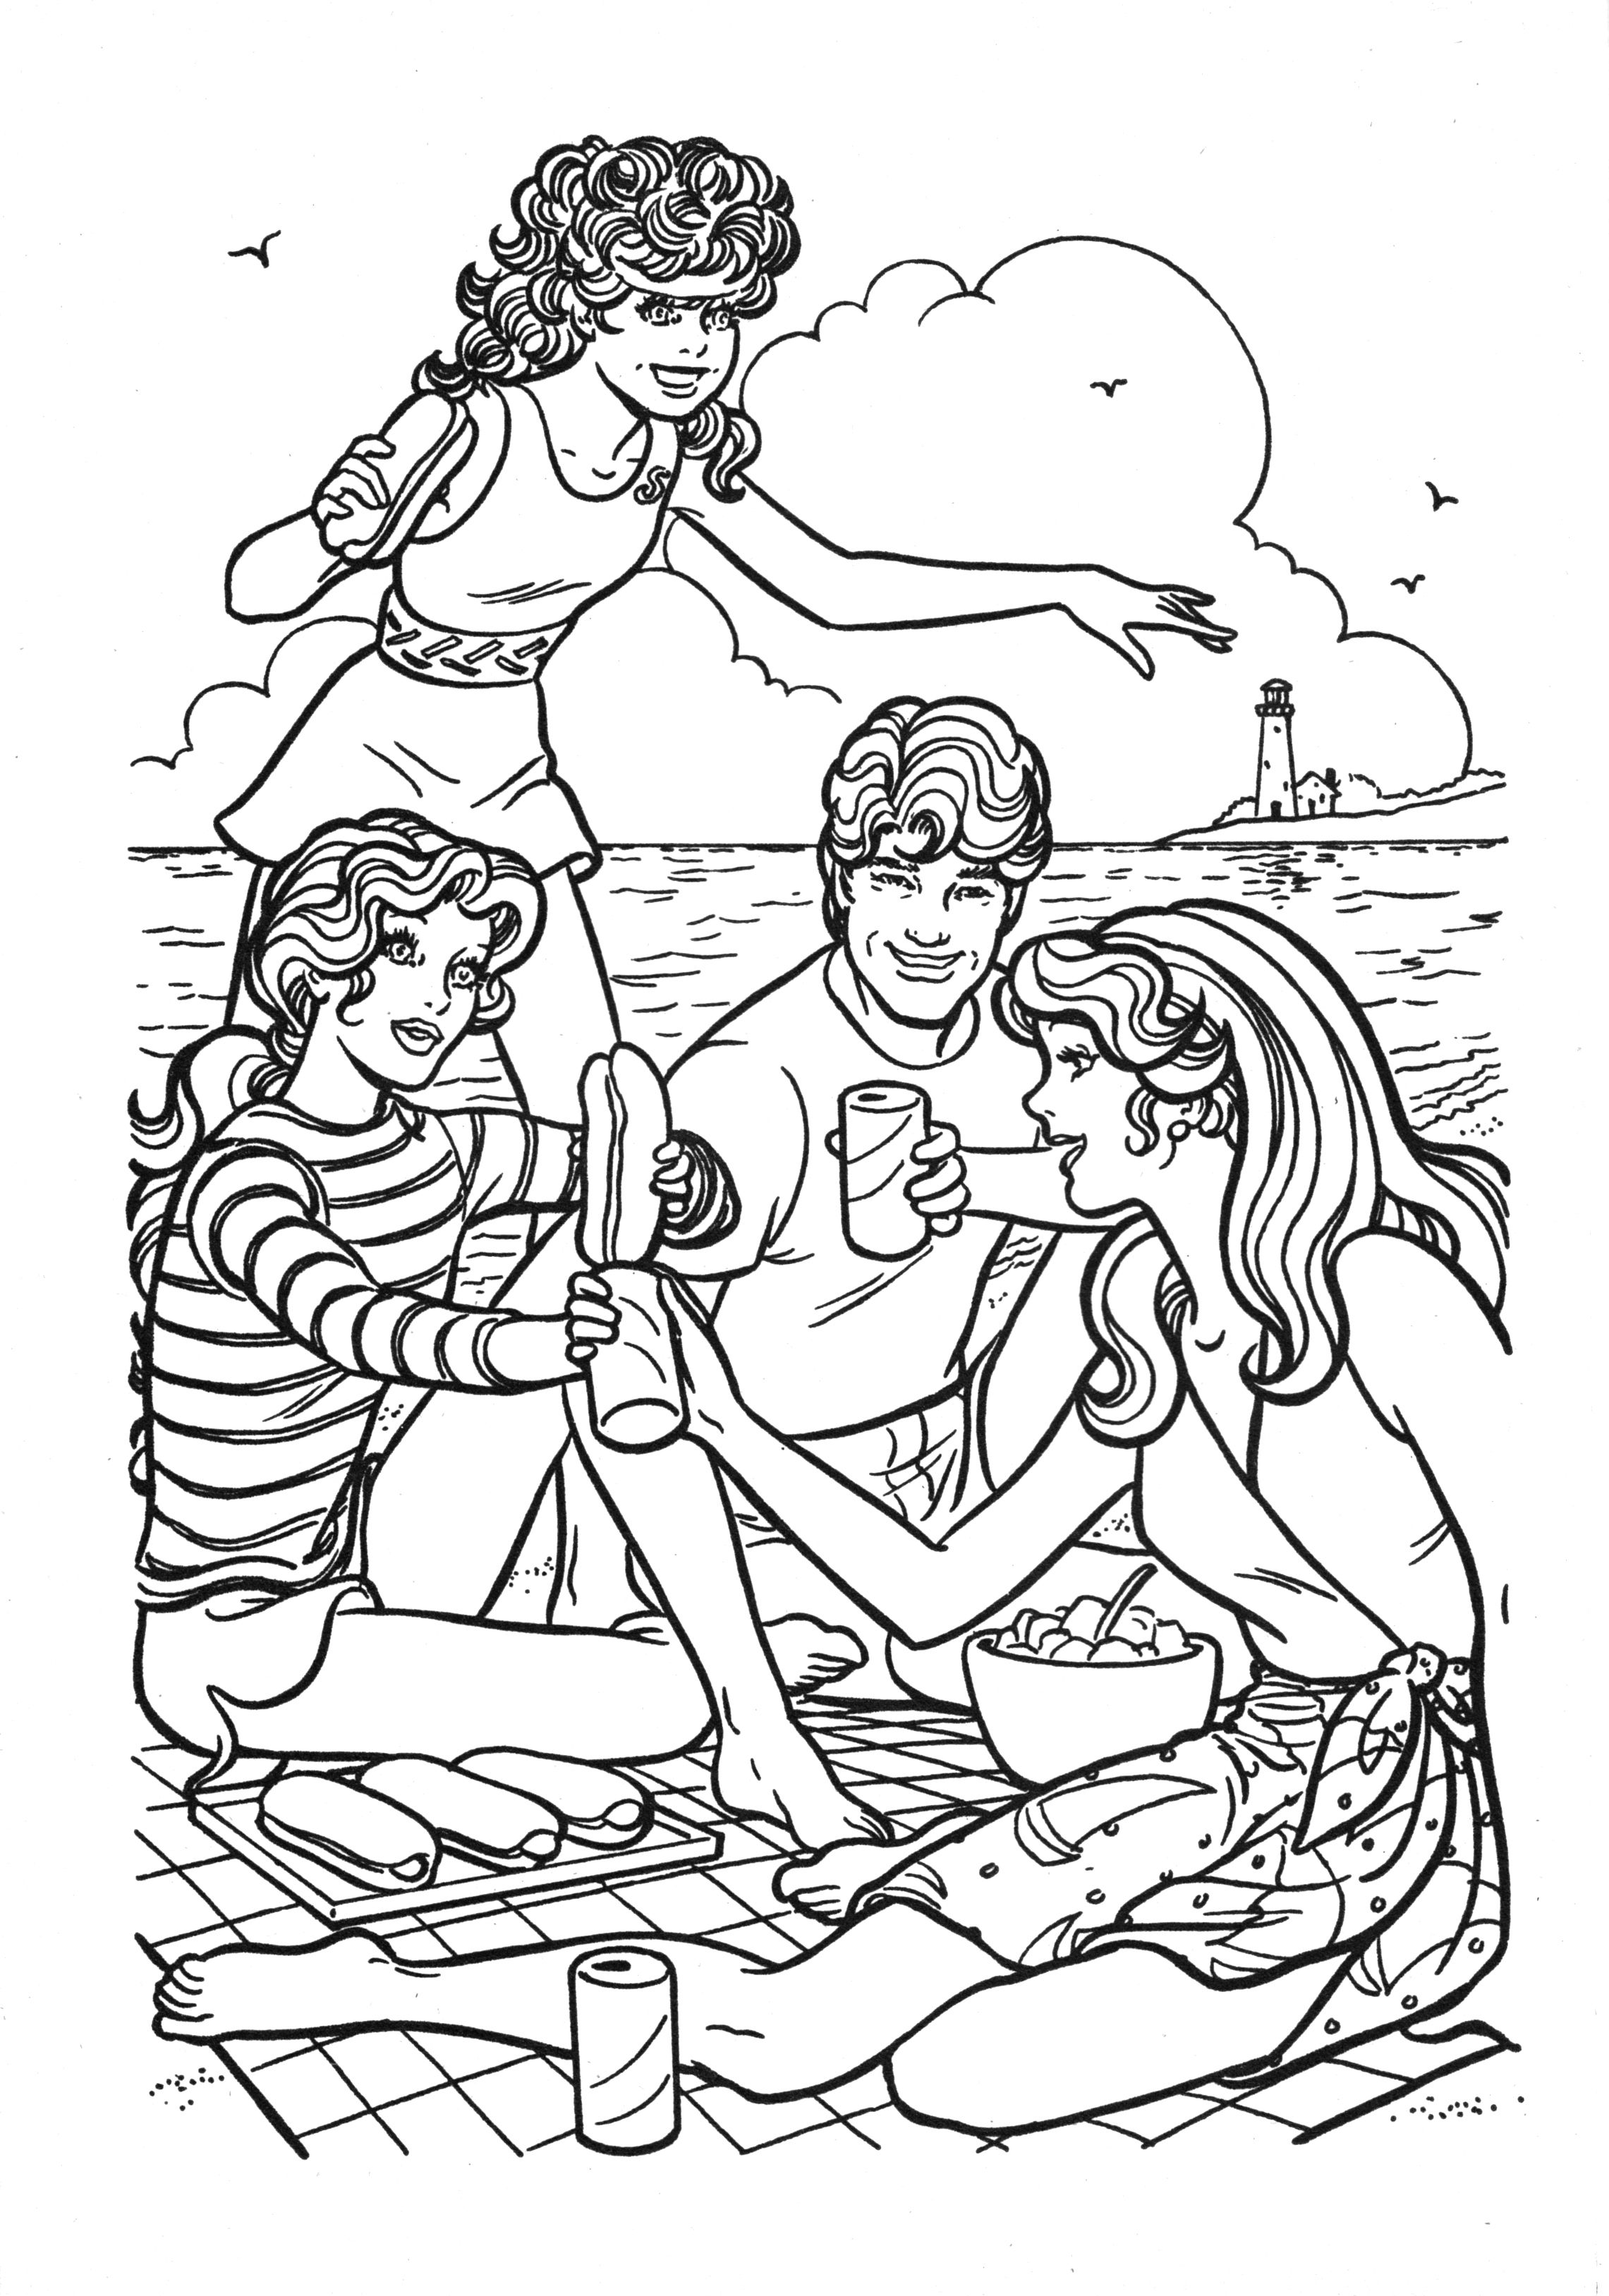 80s Colouring Book Page